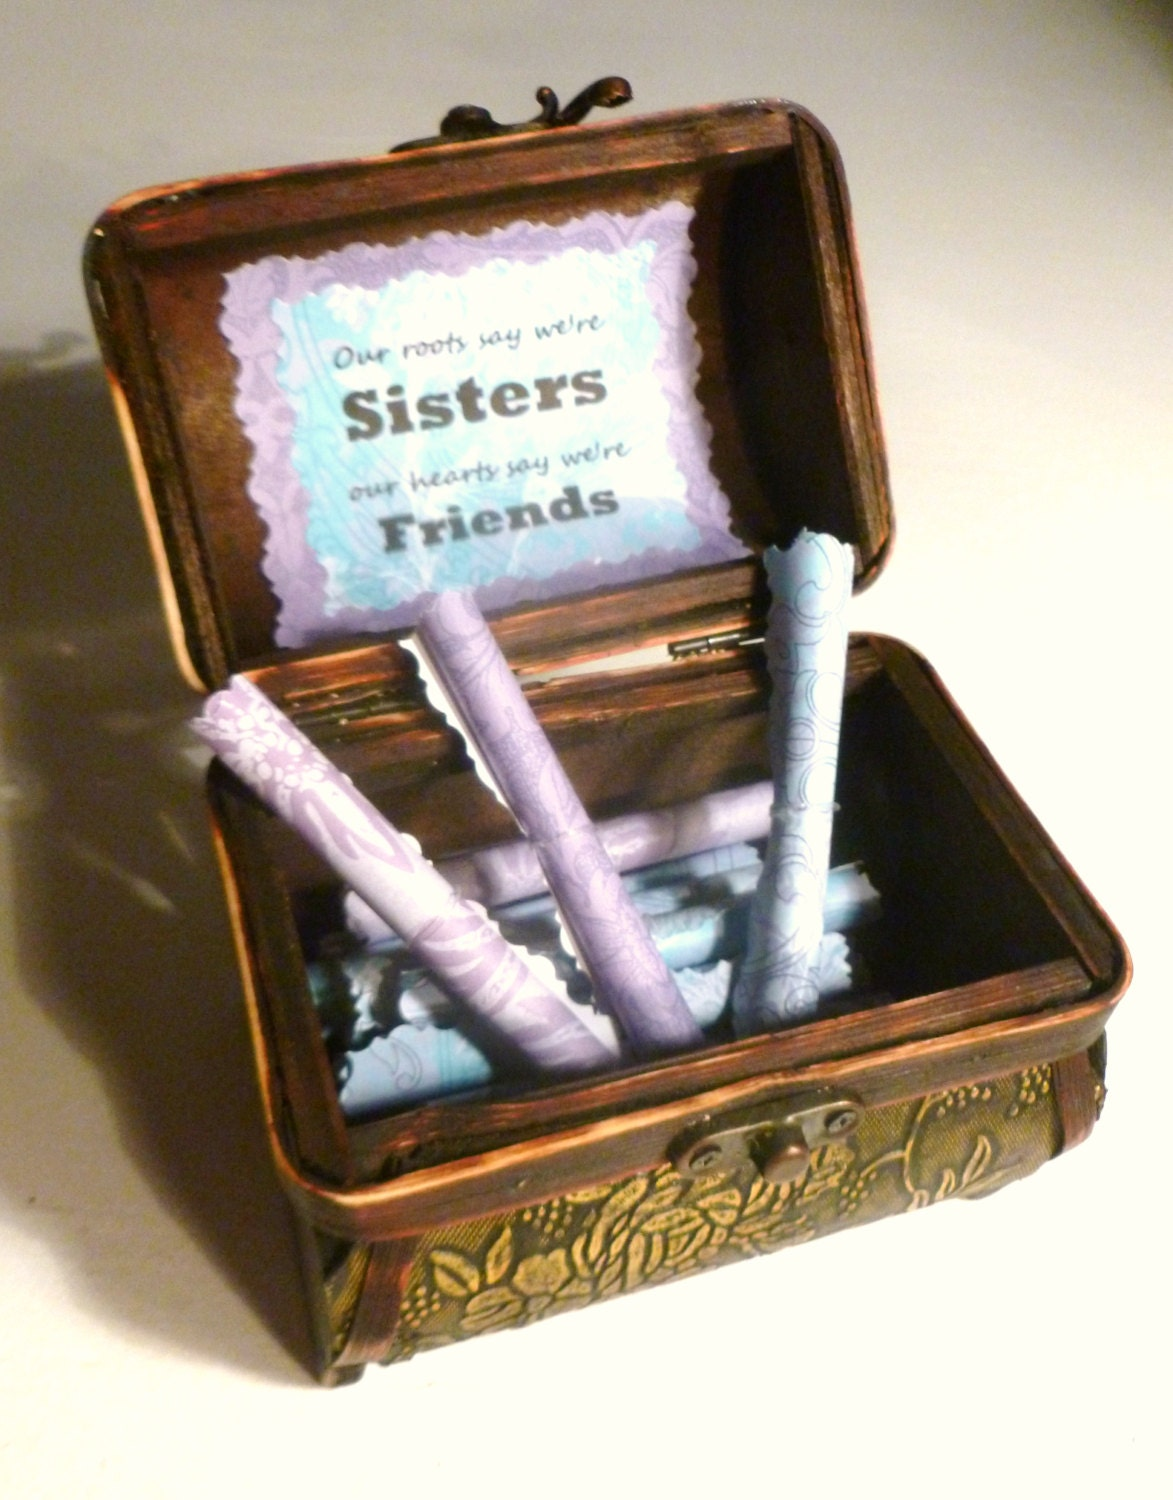 Sister Scrolls Wood Chest Of 21 Heartfelt Quotes About Sisters A Unique And Meaningful